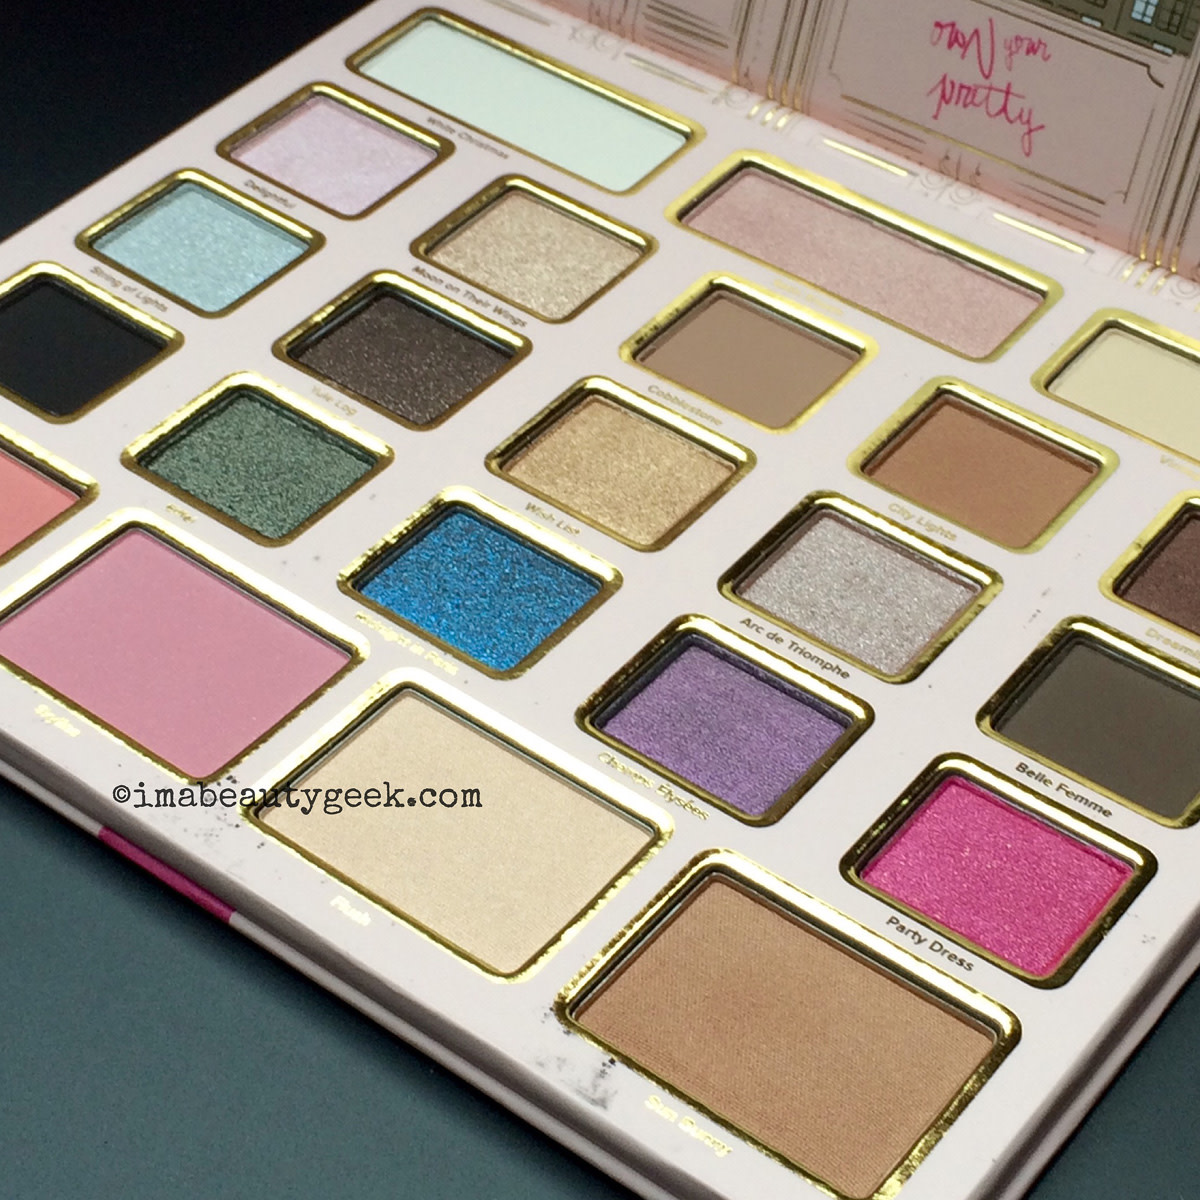 Too Faced Holiday 2015_Le Grand Palais eyes and cheeks palette